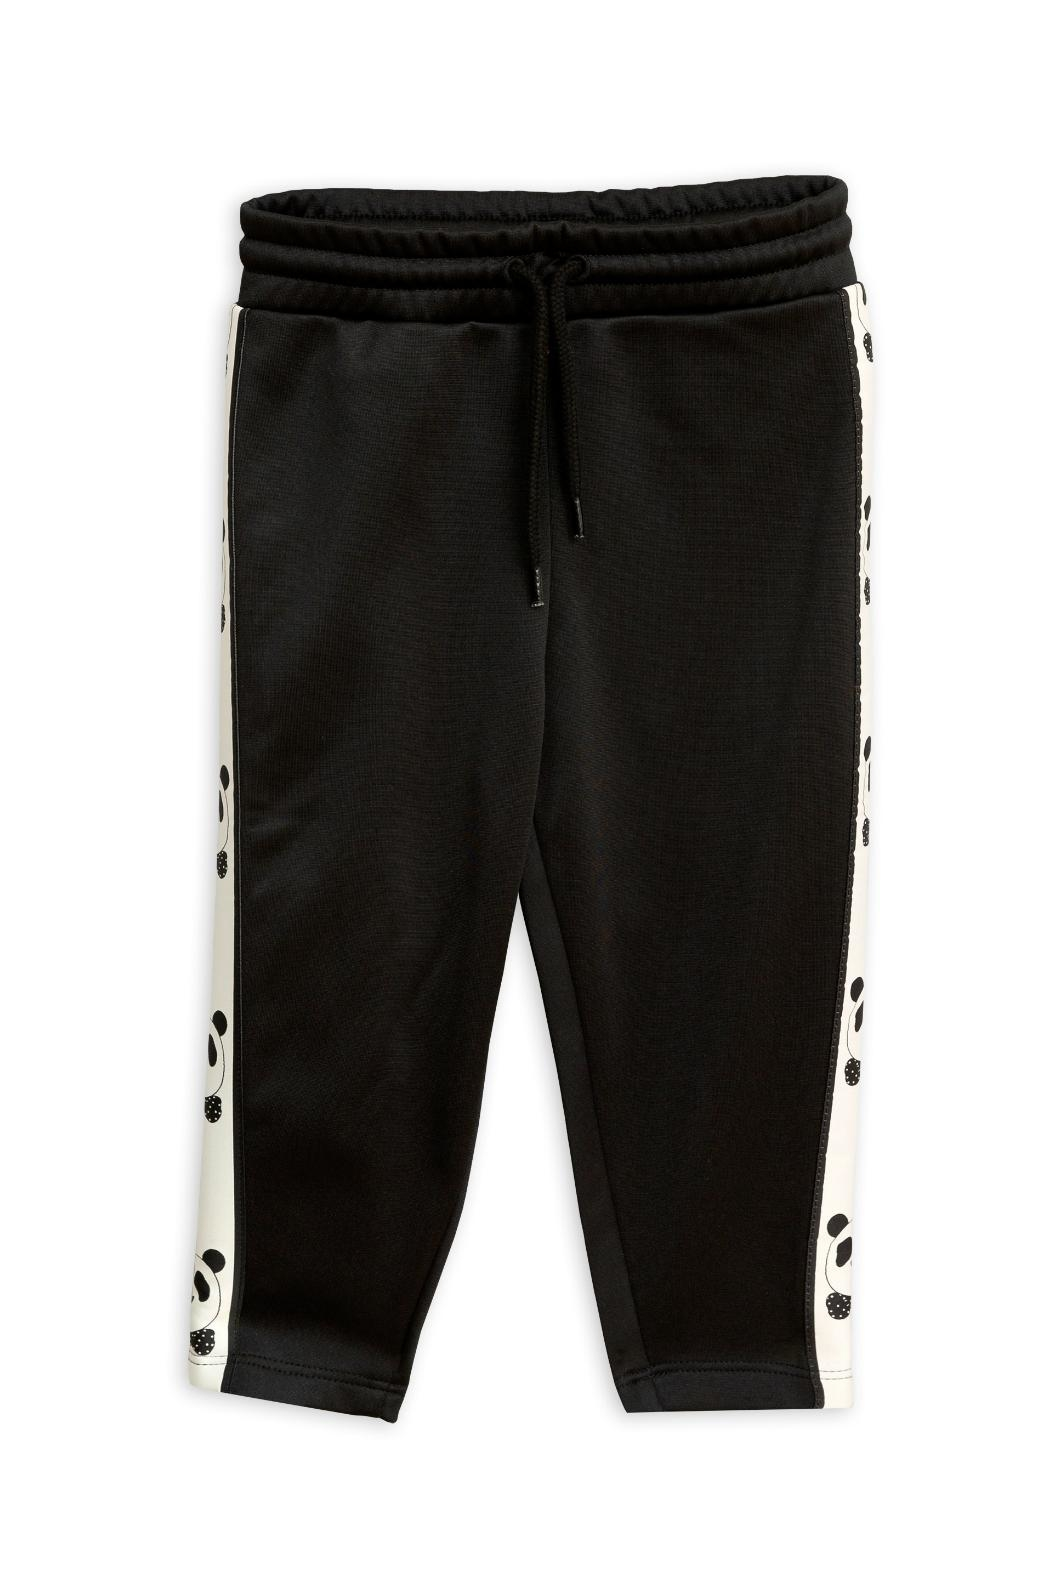 Mini Rodini Black Panda Pants - Main Image